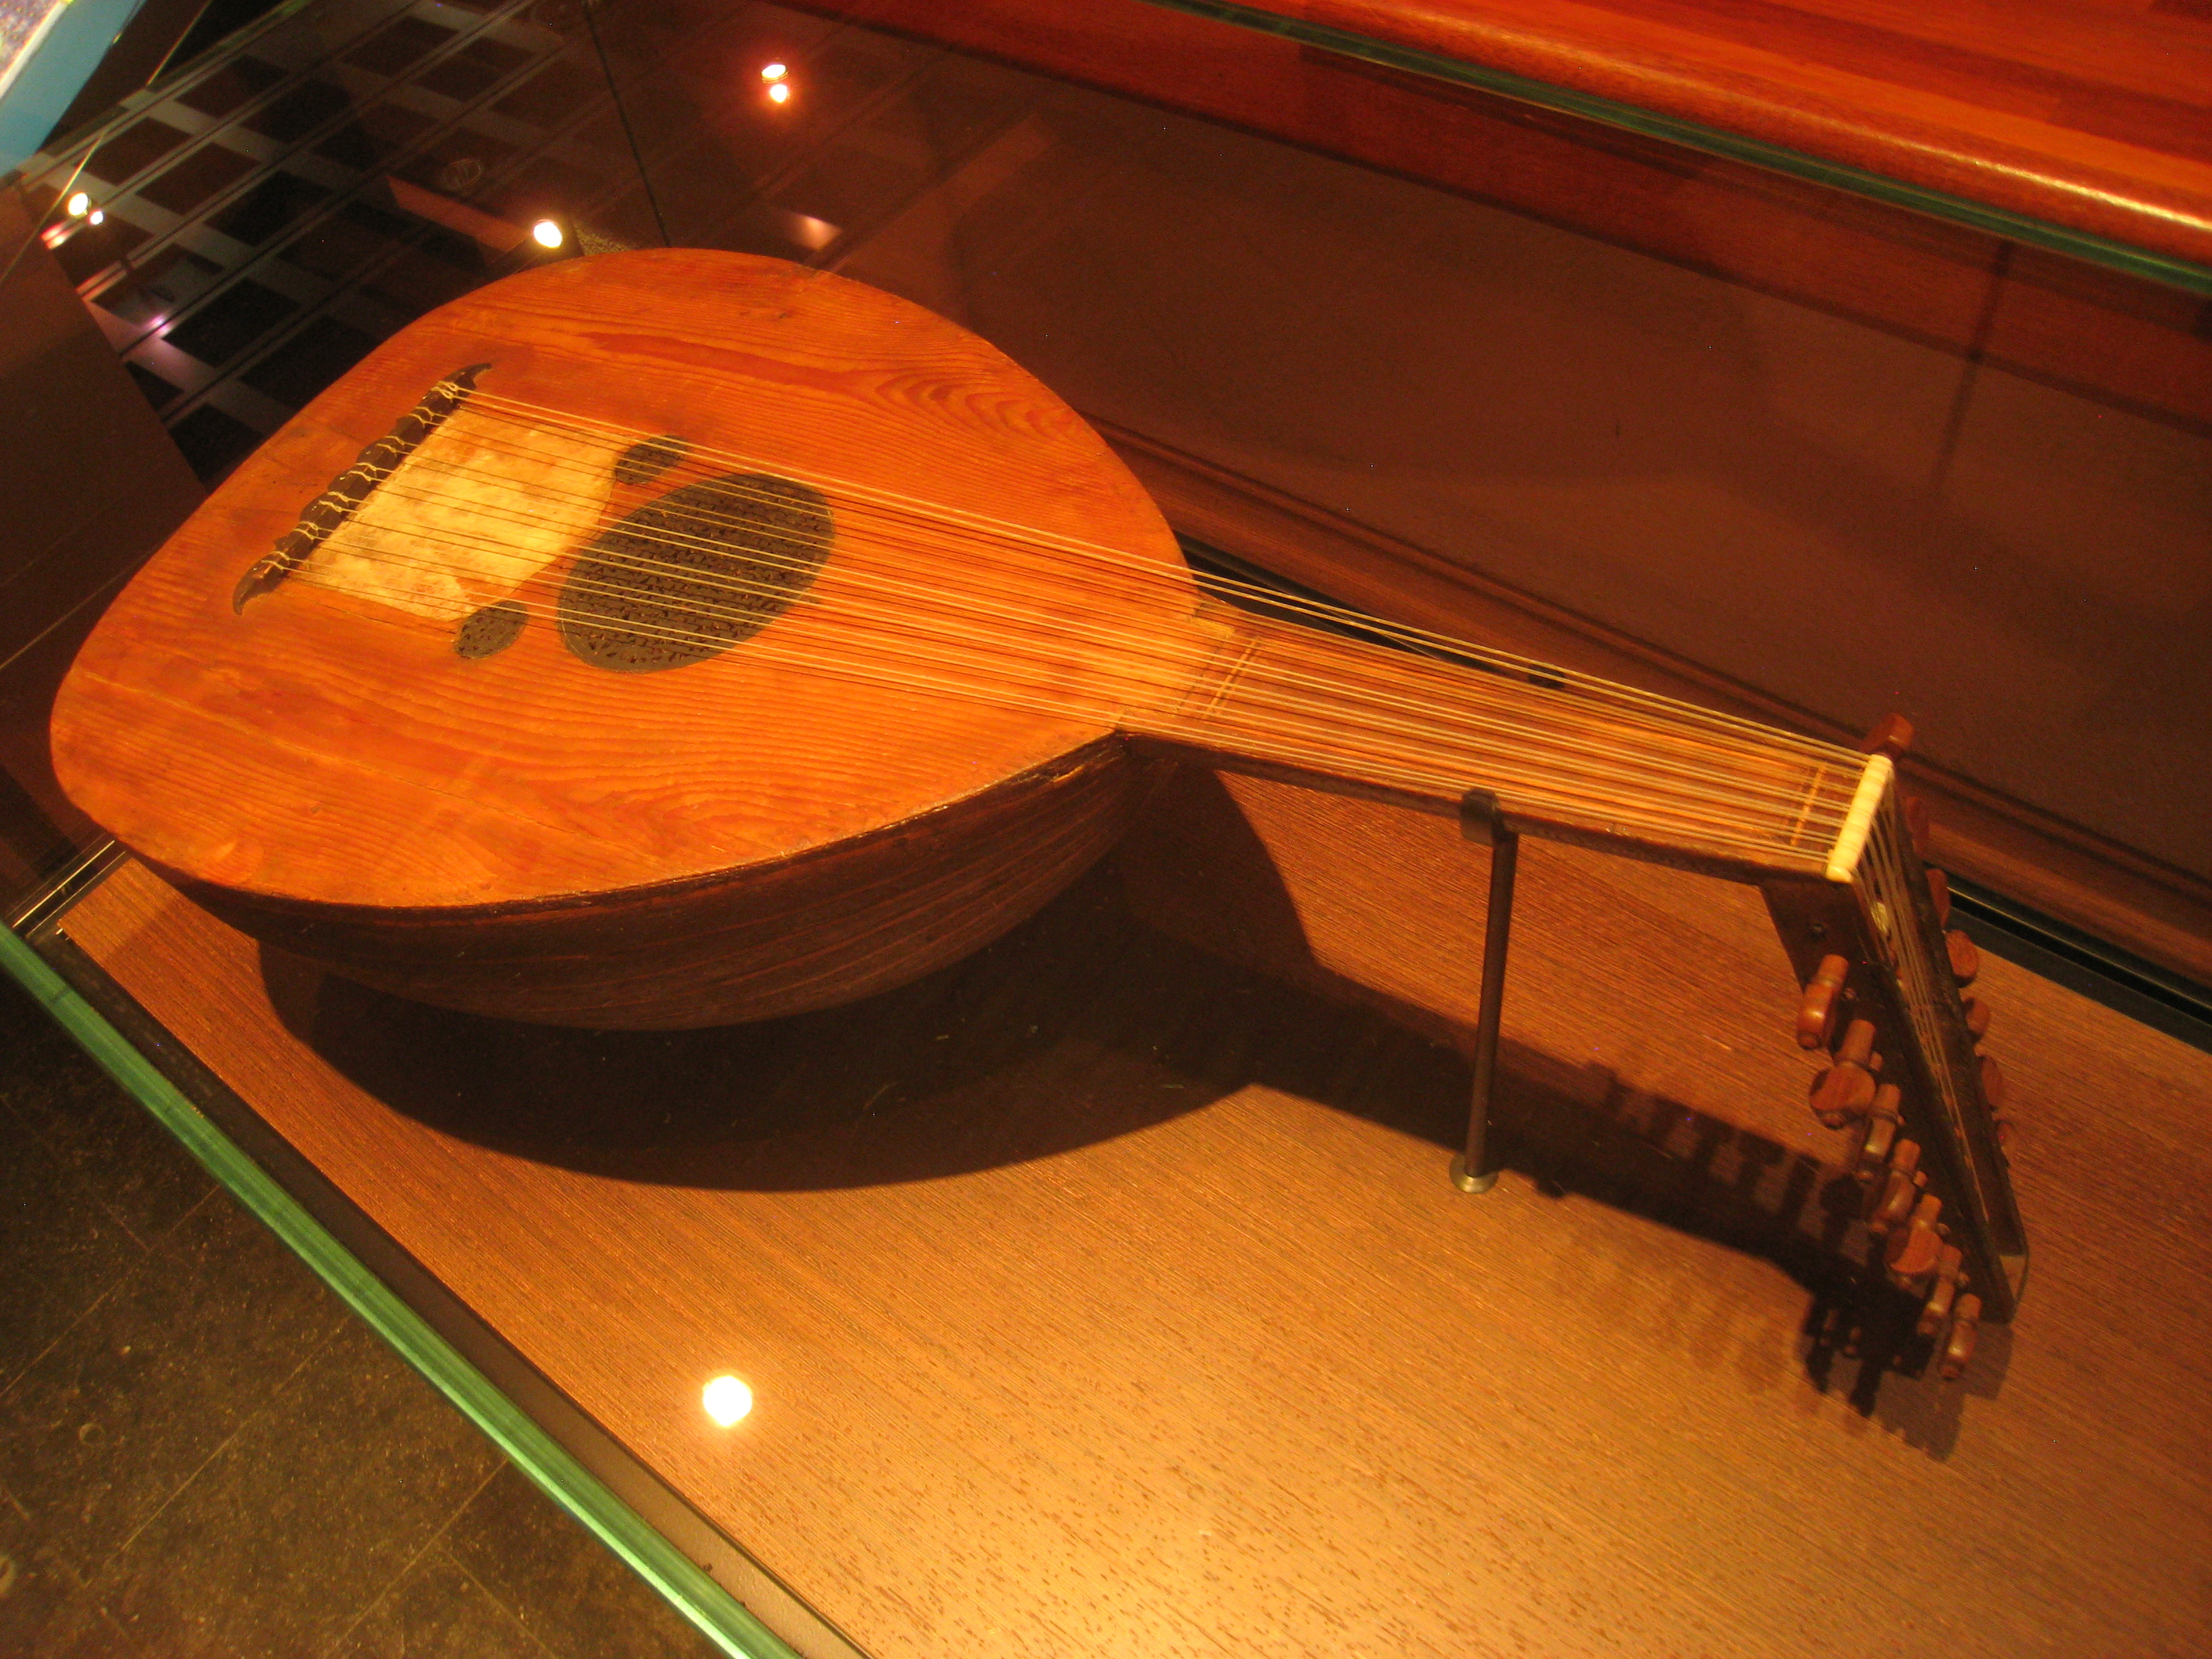 String musical instruments. Types of string instruments 65